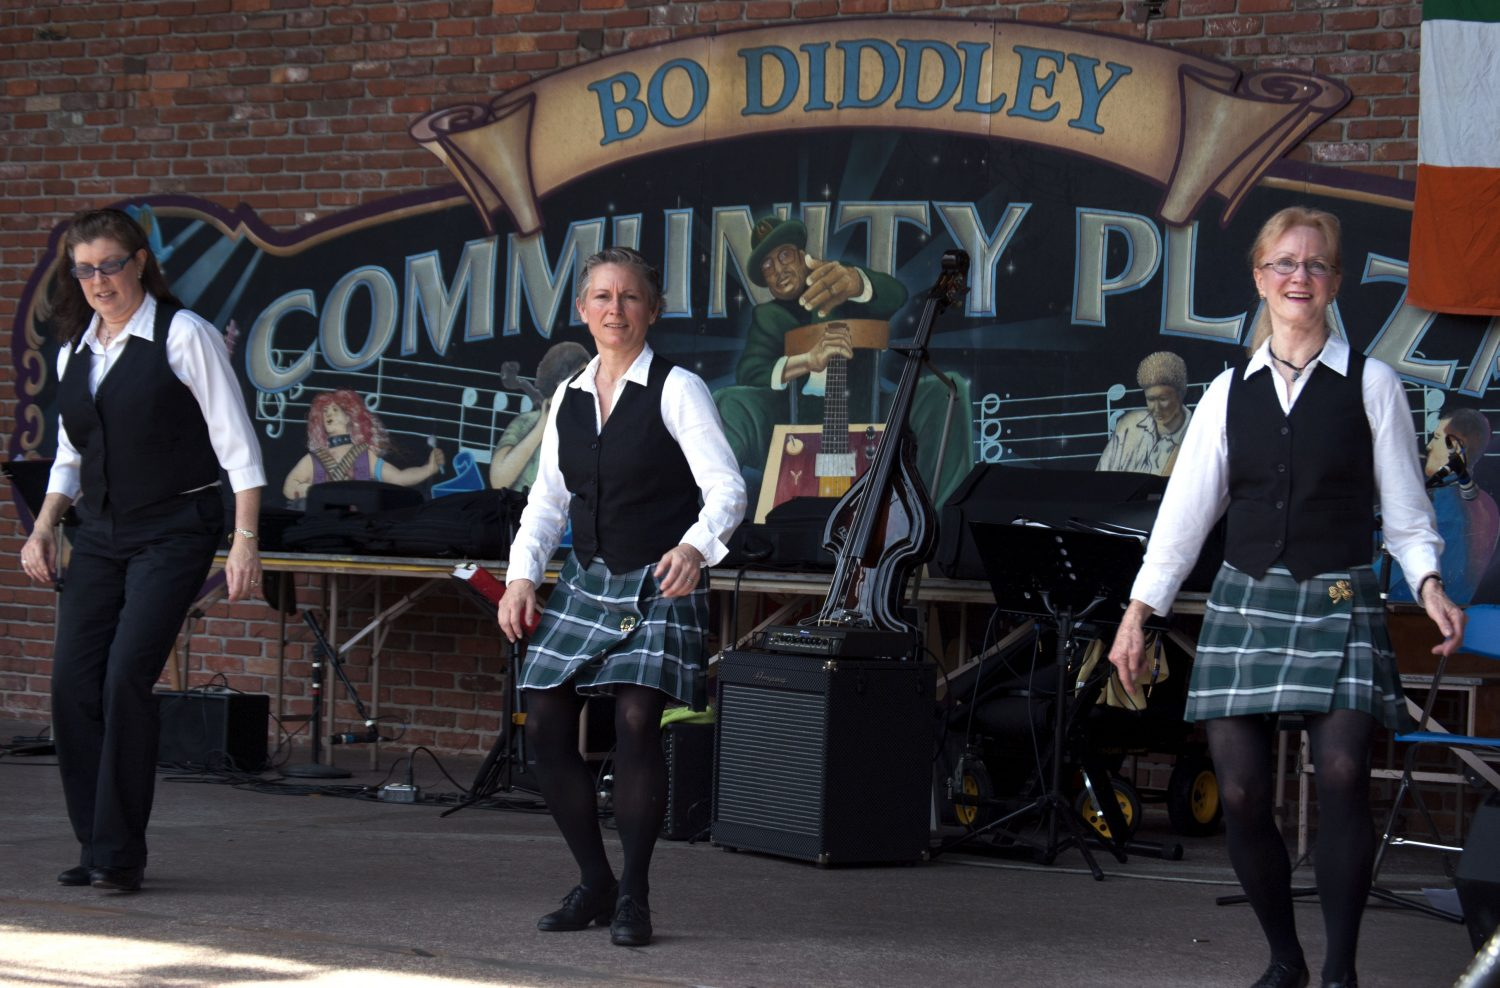 (Left to right) Virginia Boone, Piper Call and Rusty Forsmark perform Irish set dancing at the Viva Europe Festival at Bo Diddley Community Plaza Sunday.